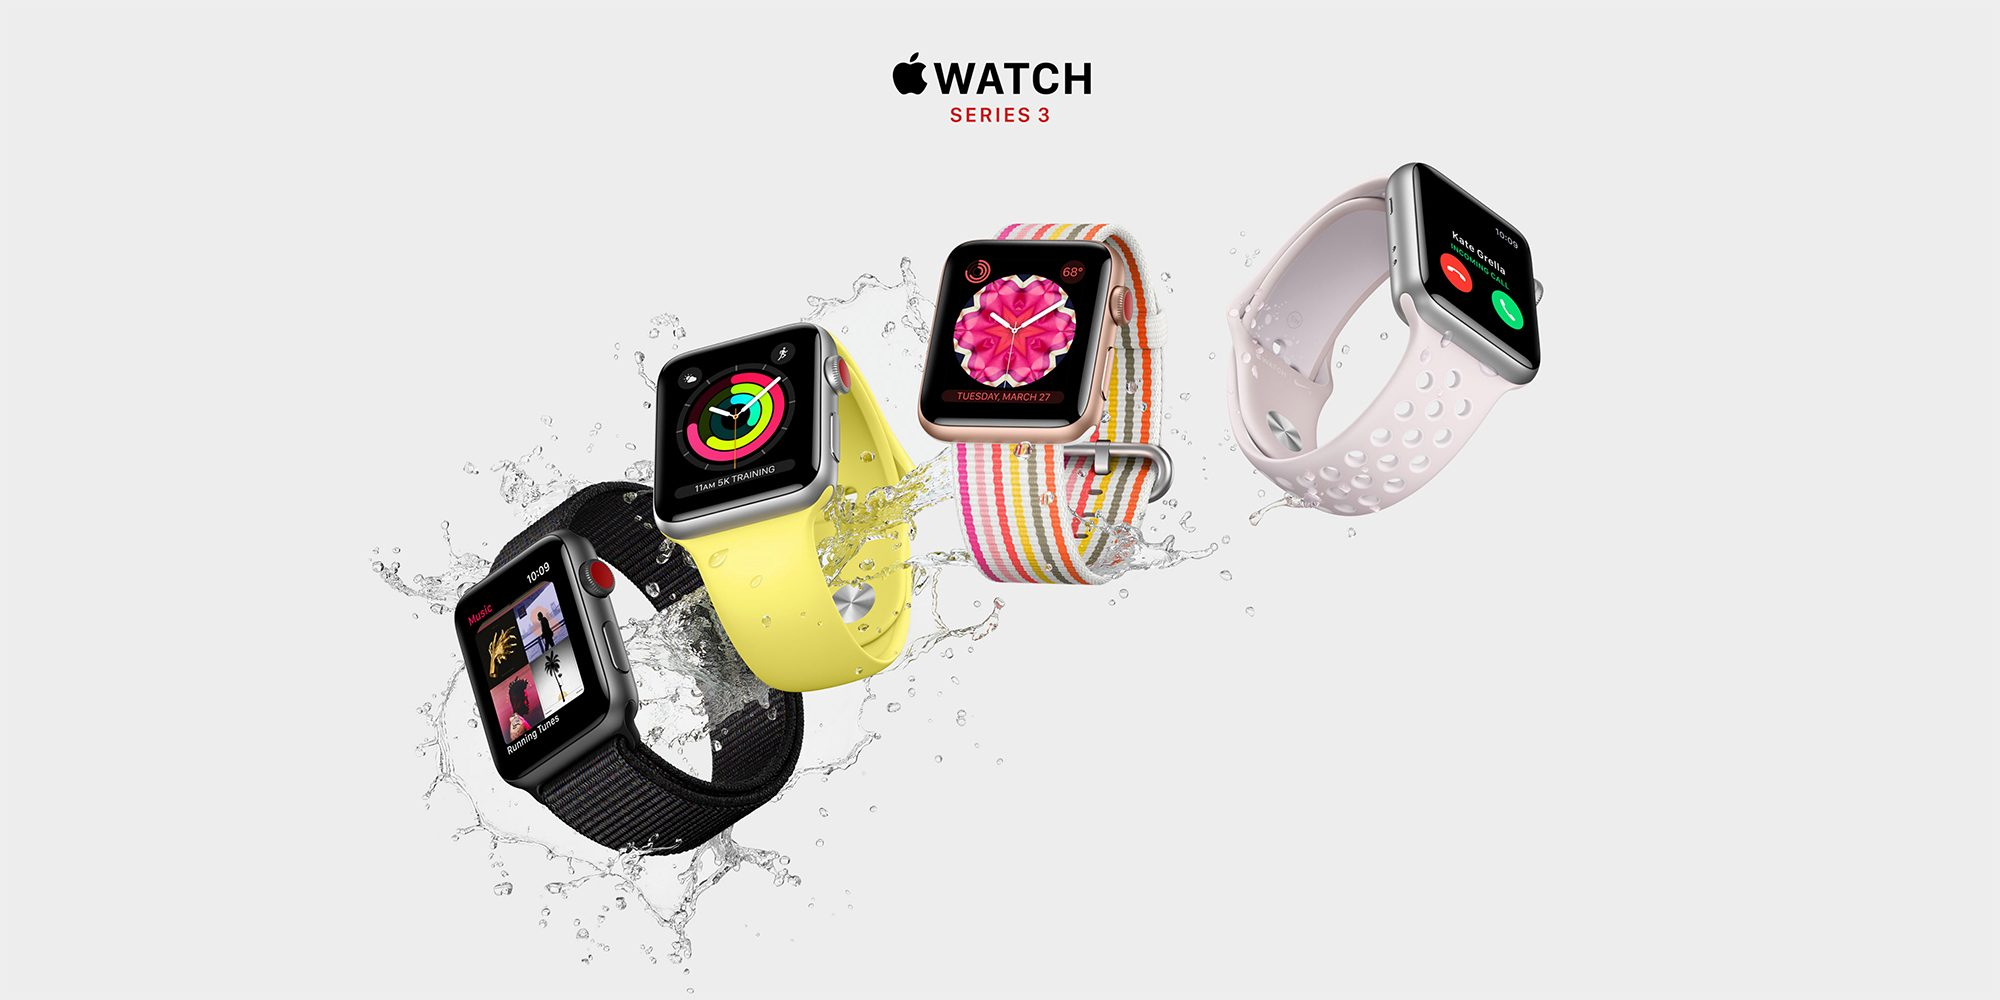 best buy takes up to 250 off apple watch series 3 cellular deals from 299 today only